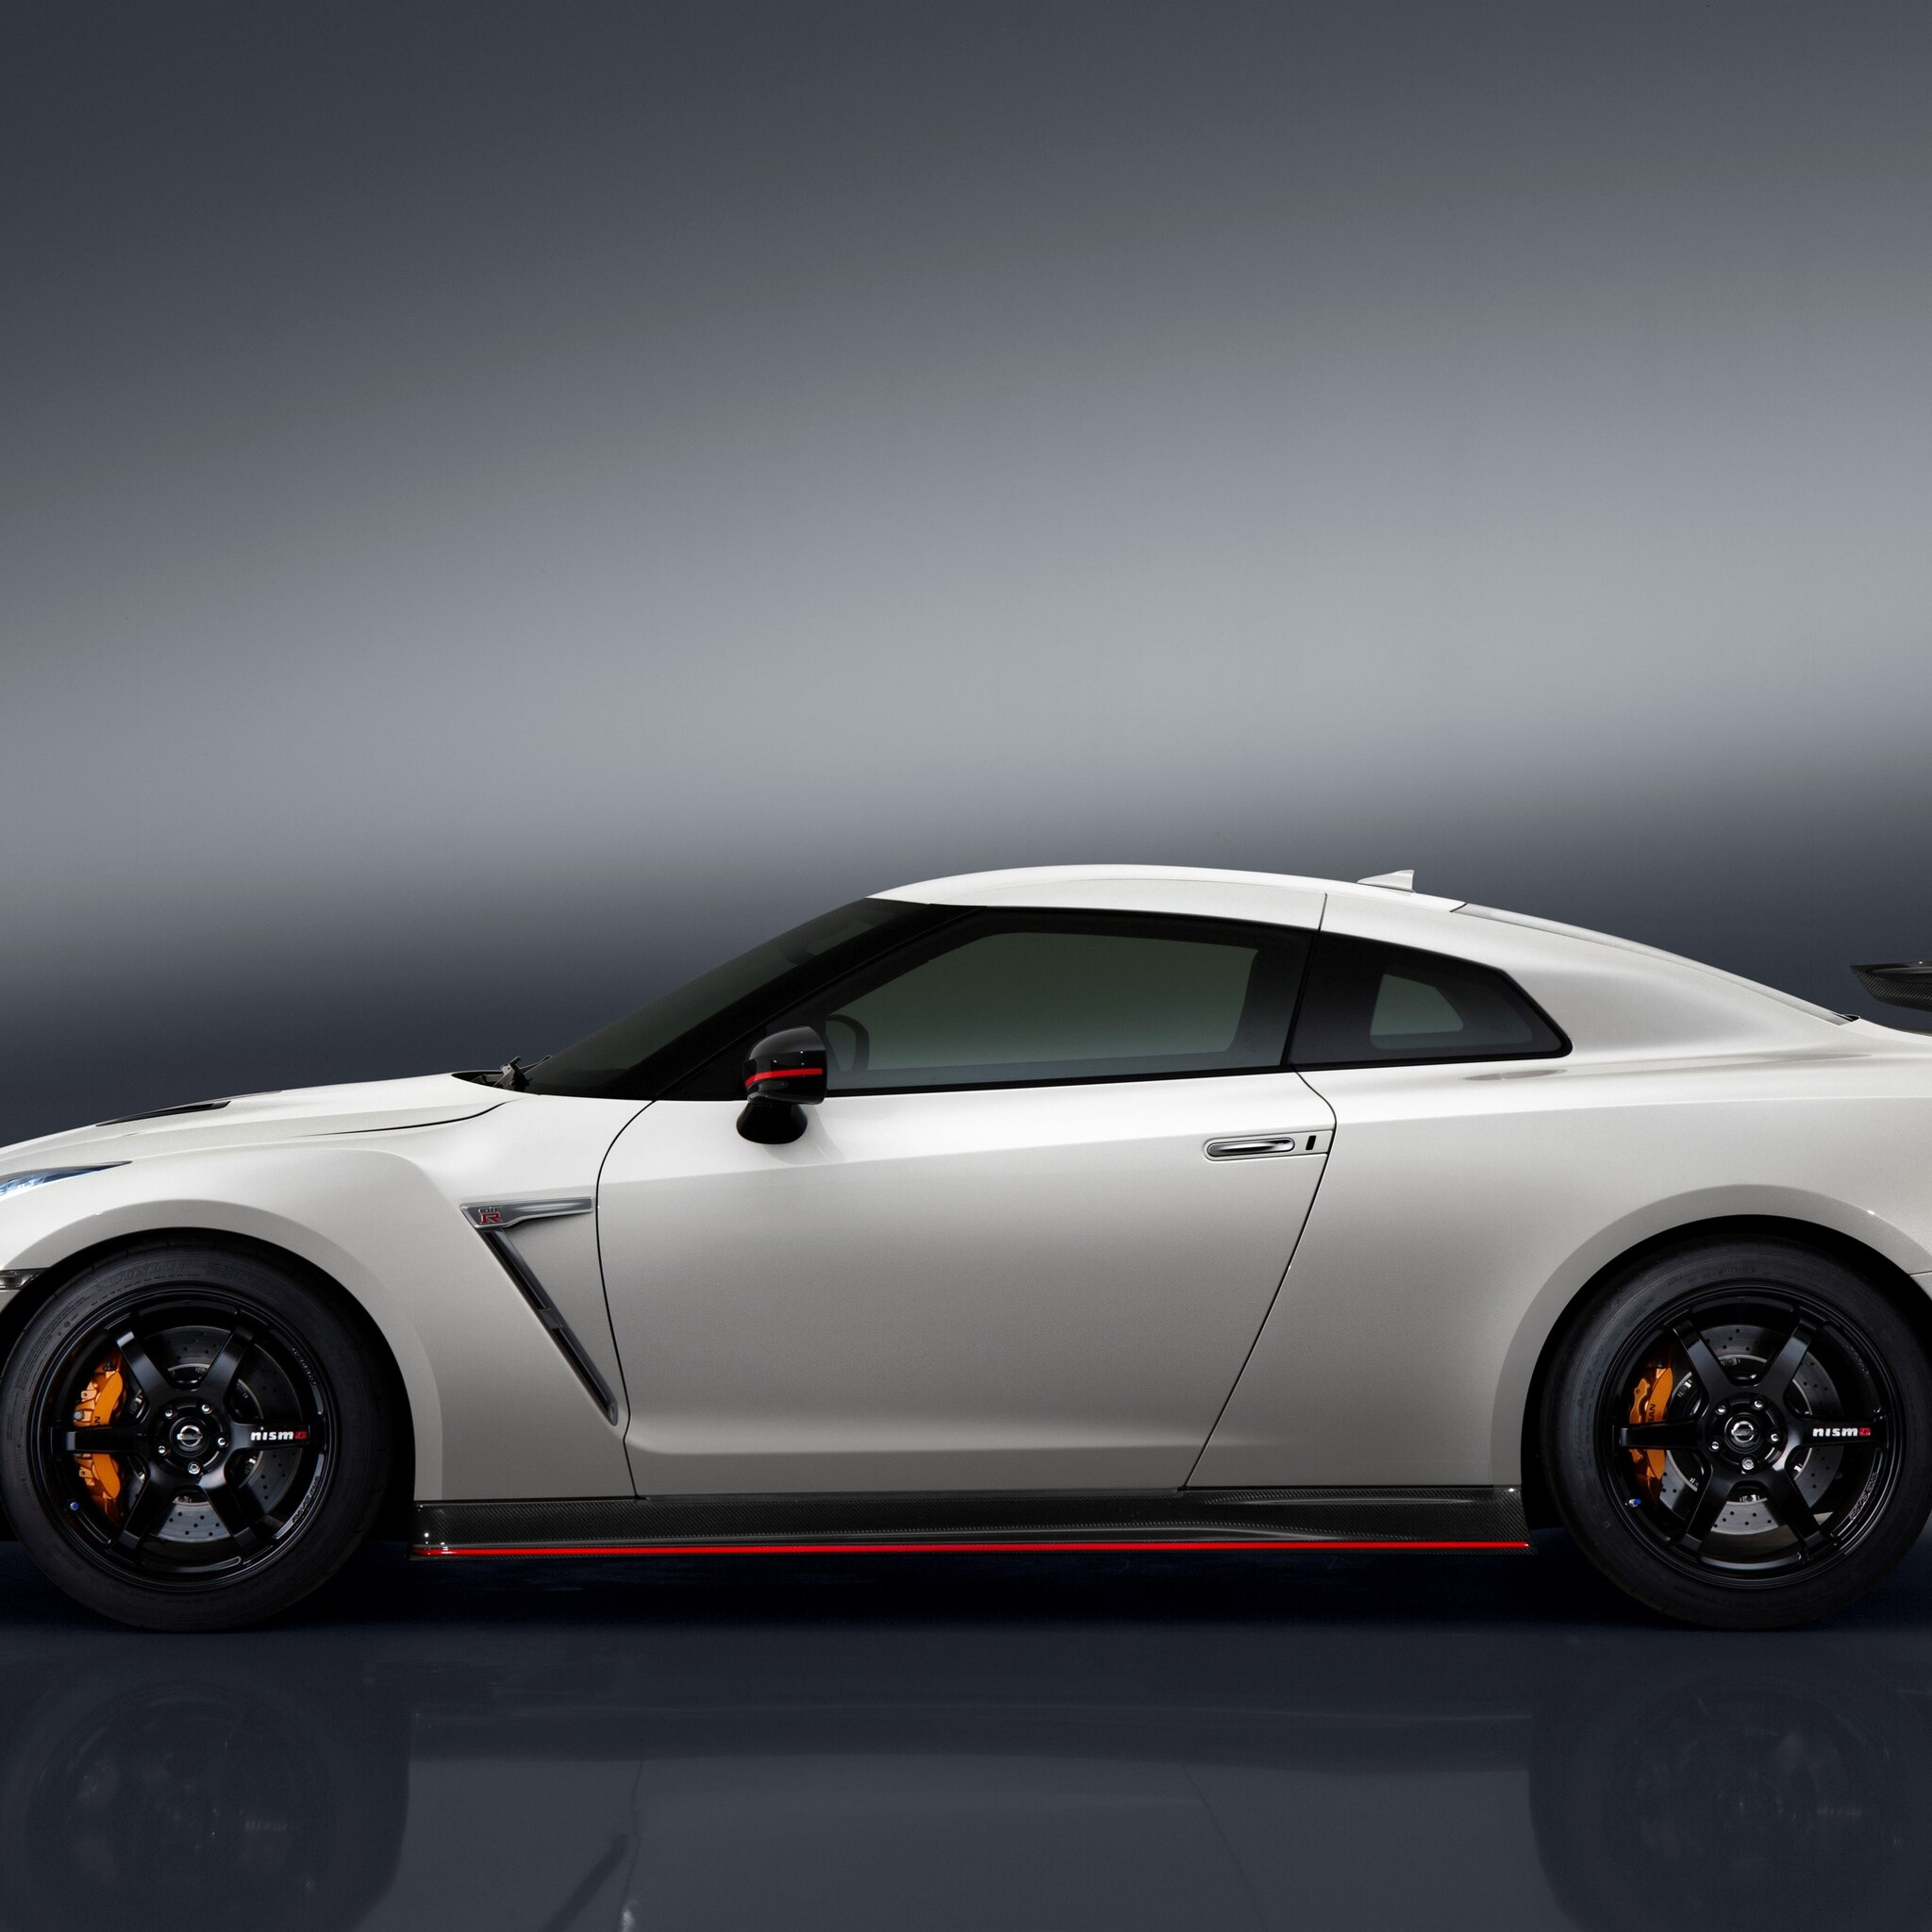 Nissan Gtr Ipad Wallpaper: 2048x2048 2017 Nissan GT R Nismo Ipad Air HD 4k Wallpapers